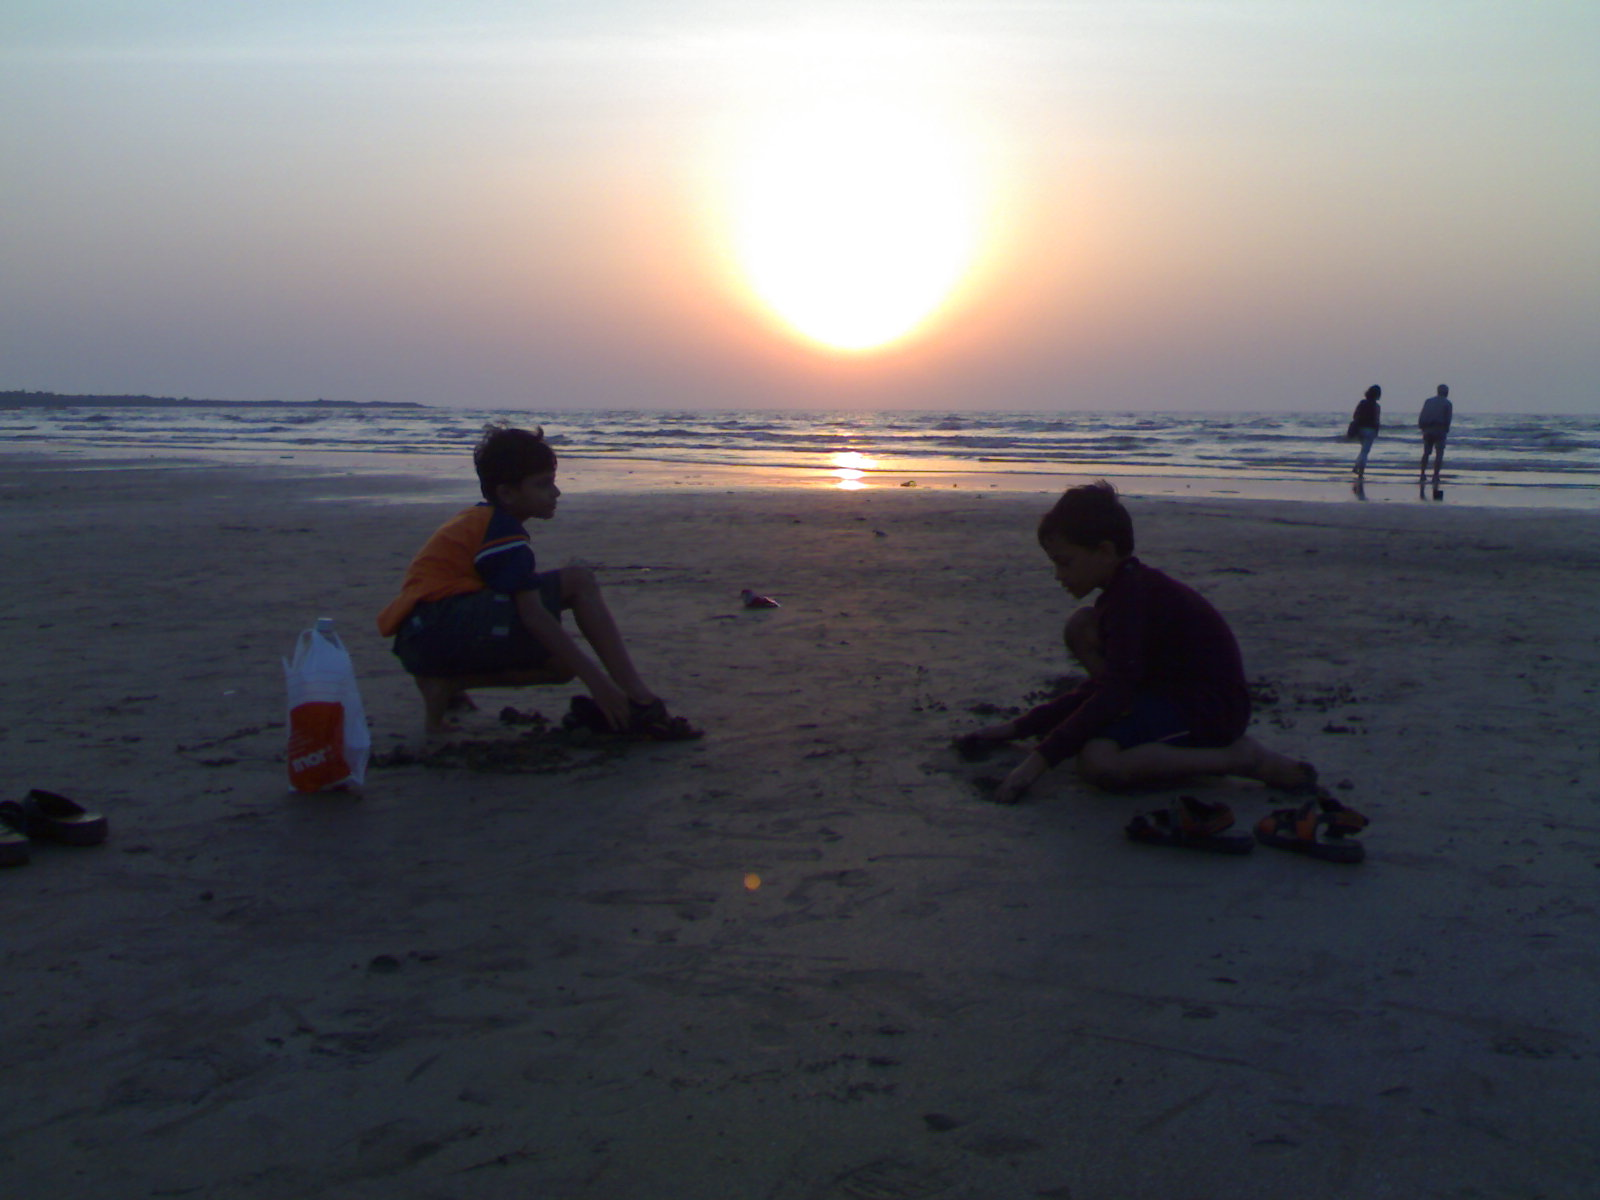 Sunset in the sands of Aksa-Bombay..Sagar,Sahil making houses on the sand, Mamta and her father walking by the sea in the horizons